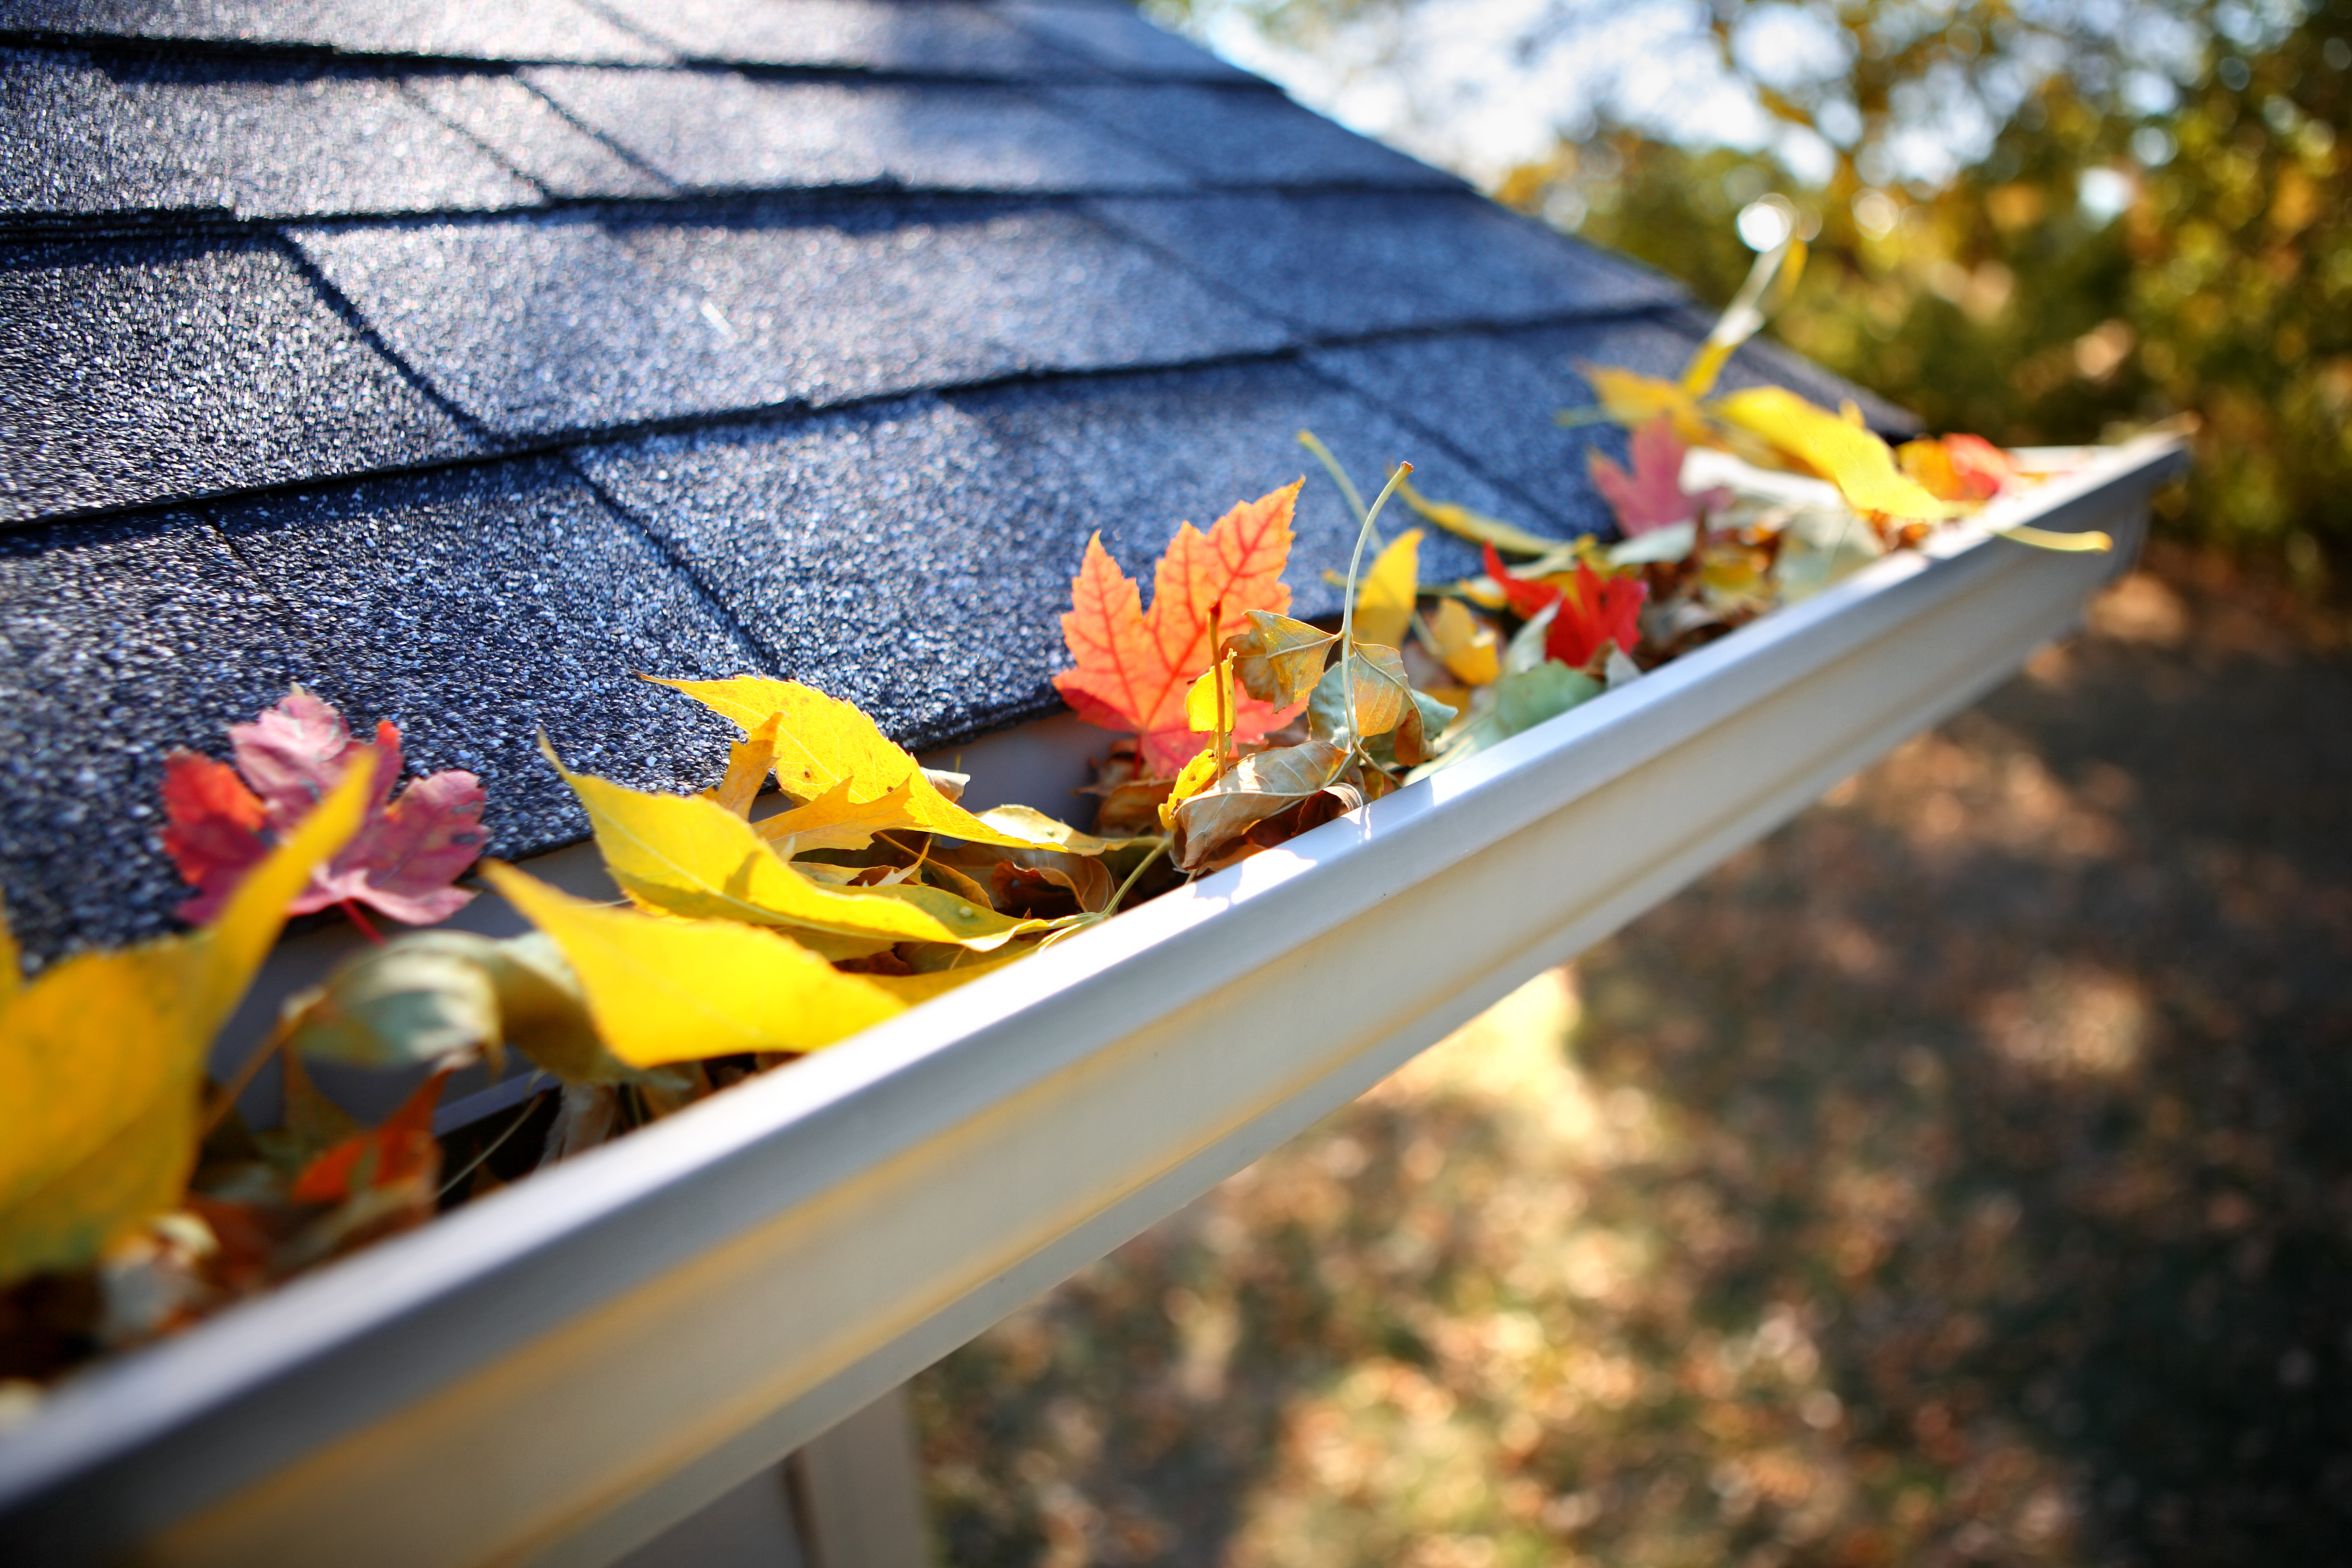 Roof, Gutters, Fall Leaves - Armor Roofing